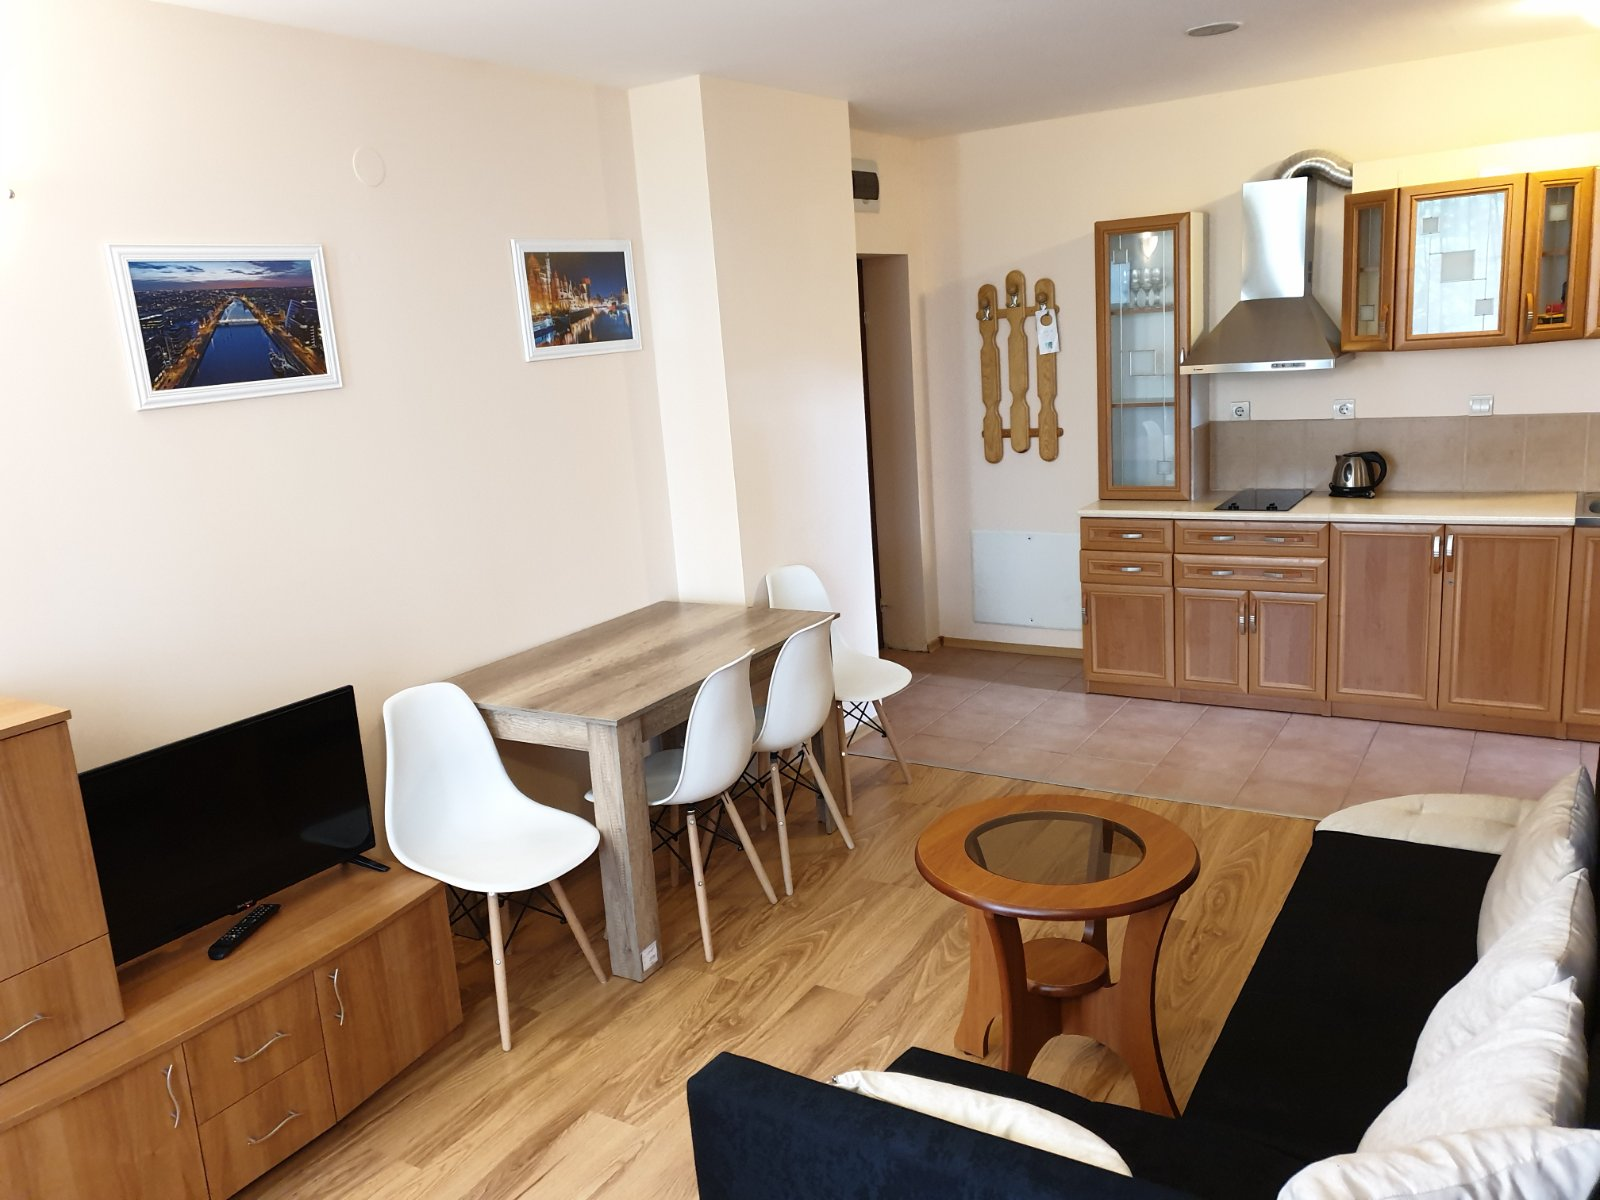 lovely one bedroom apartment for sale in orbilux complex